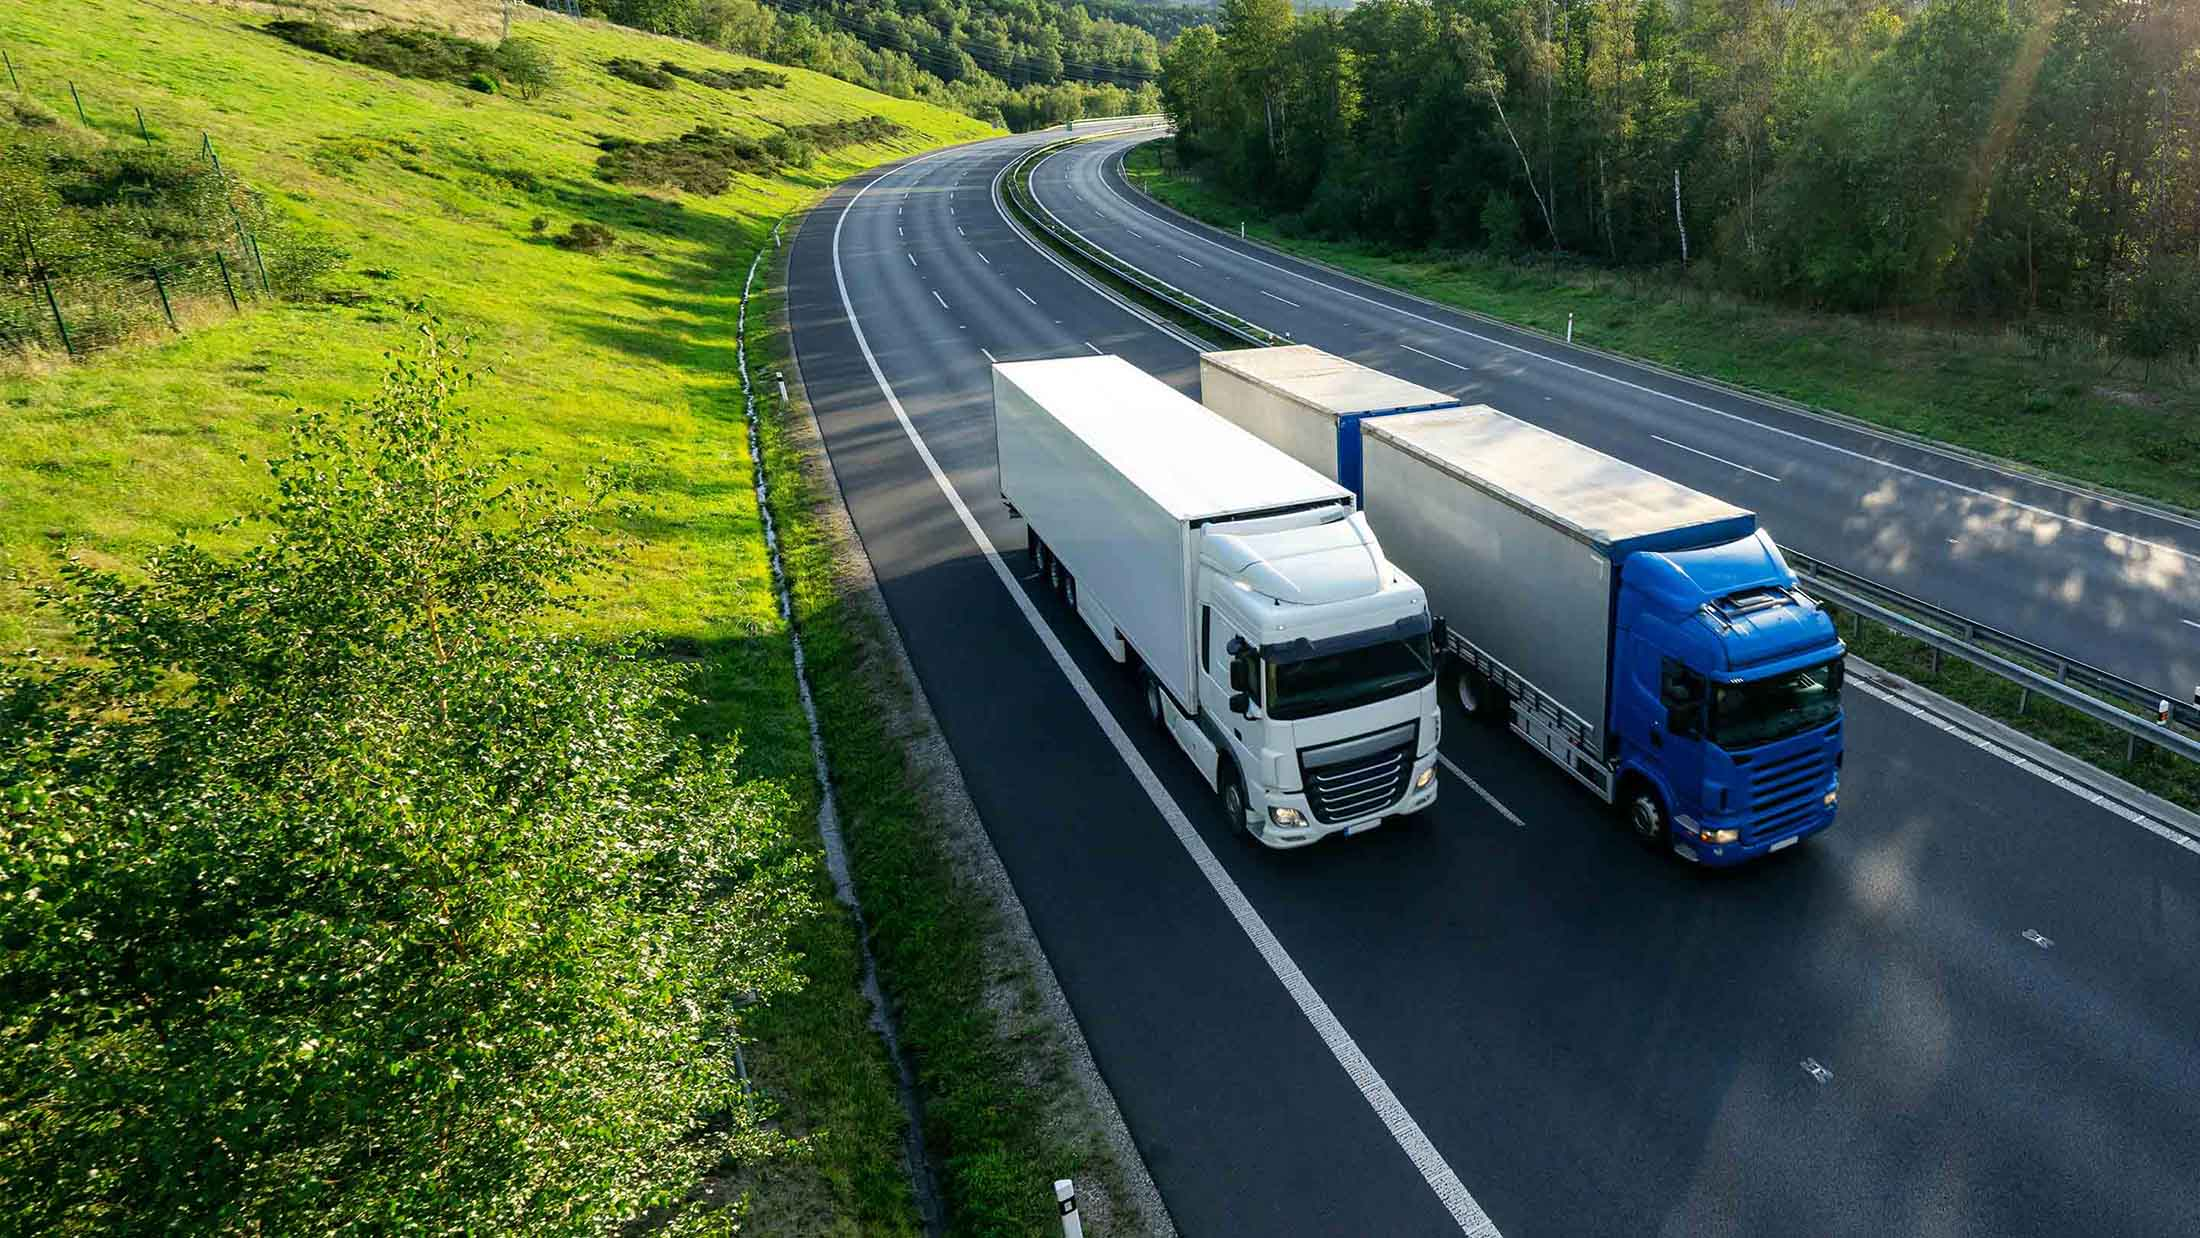 Two trucks with tachographs installed, driving side by side.